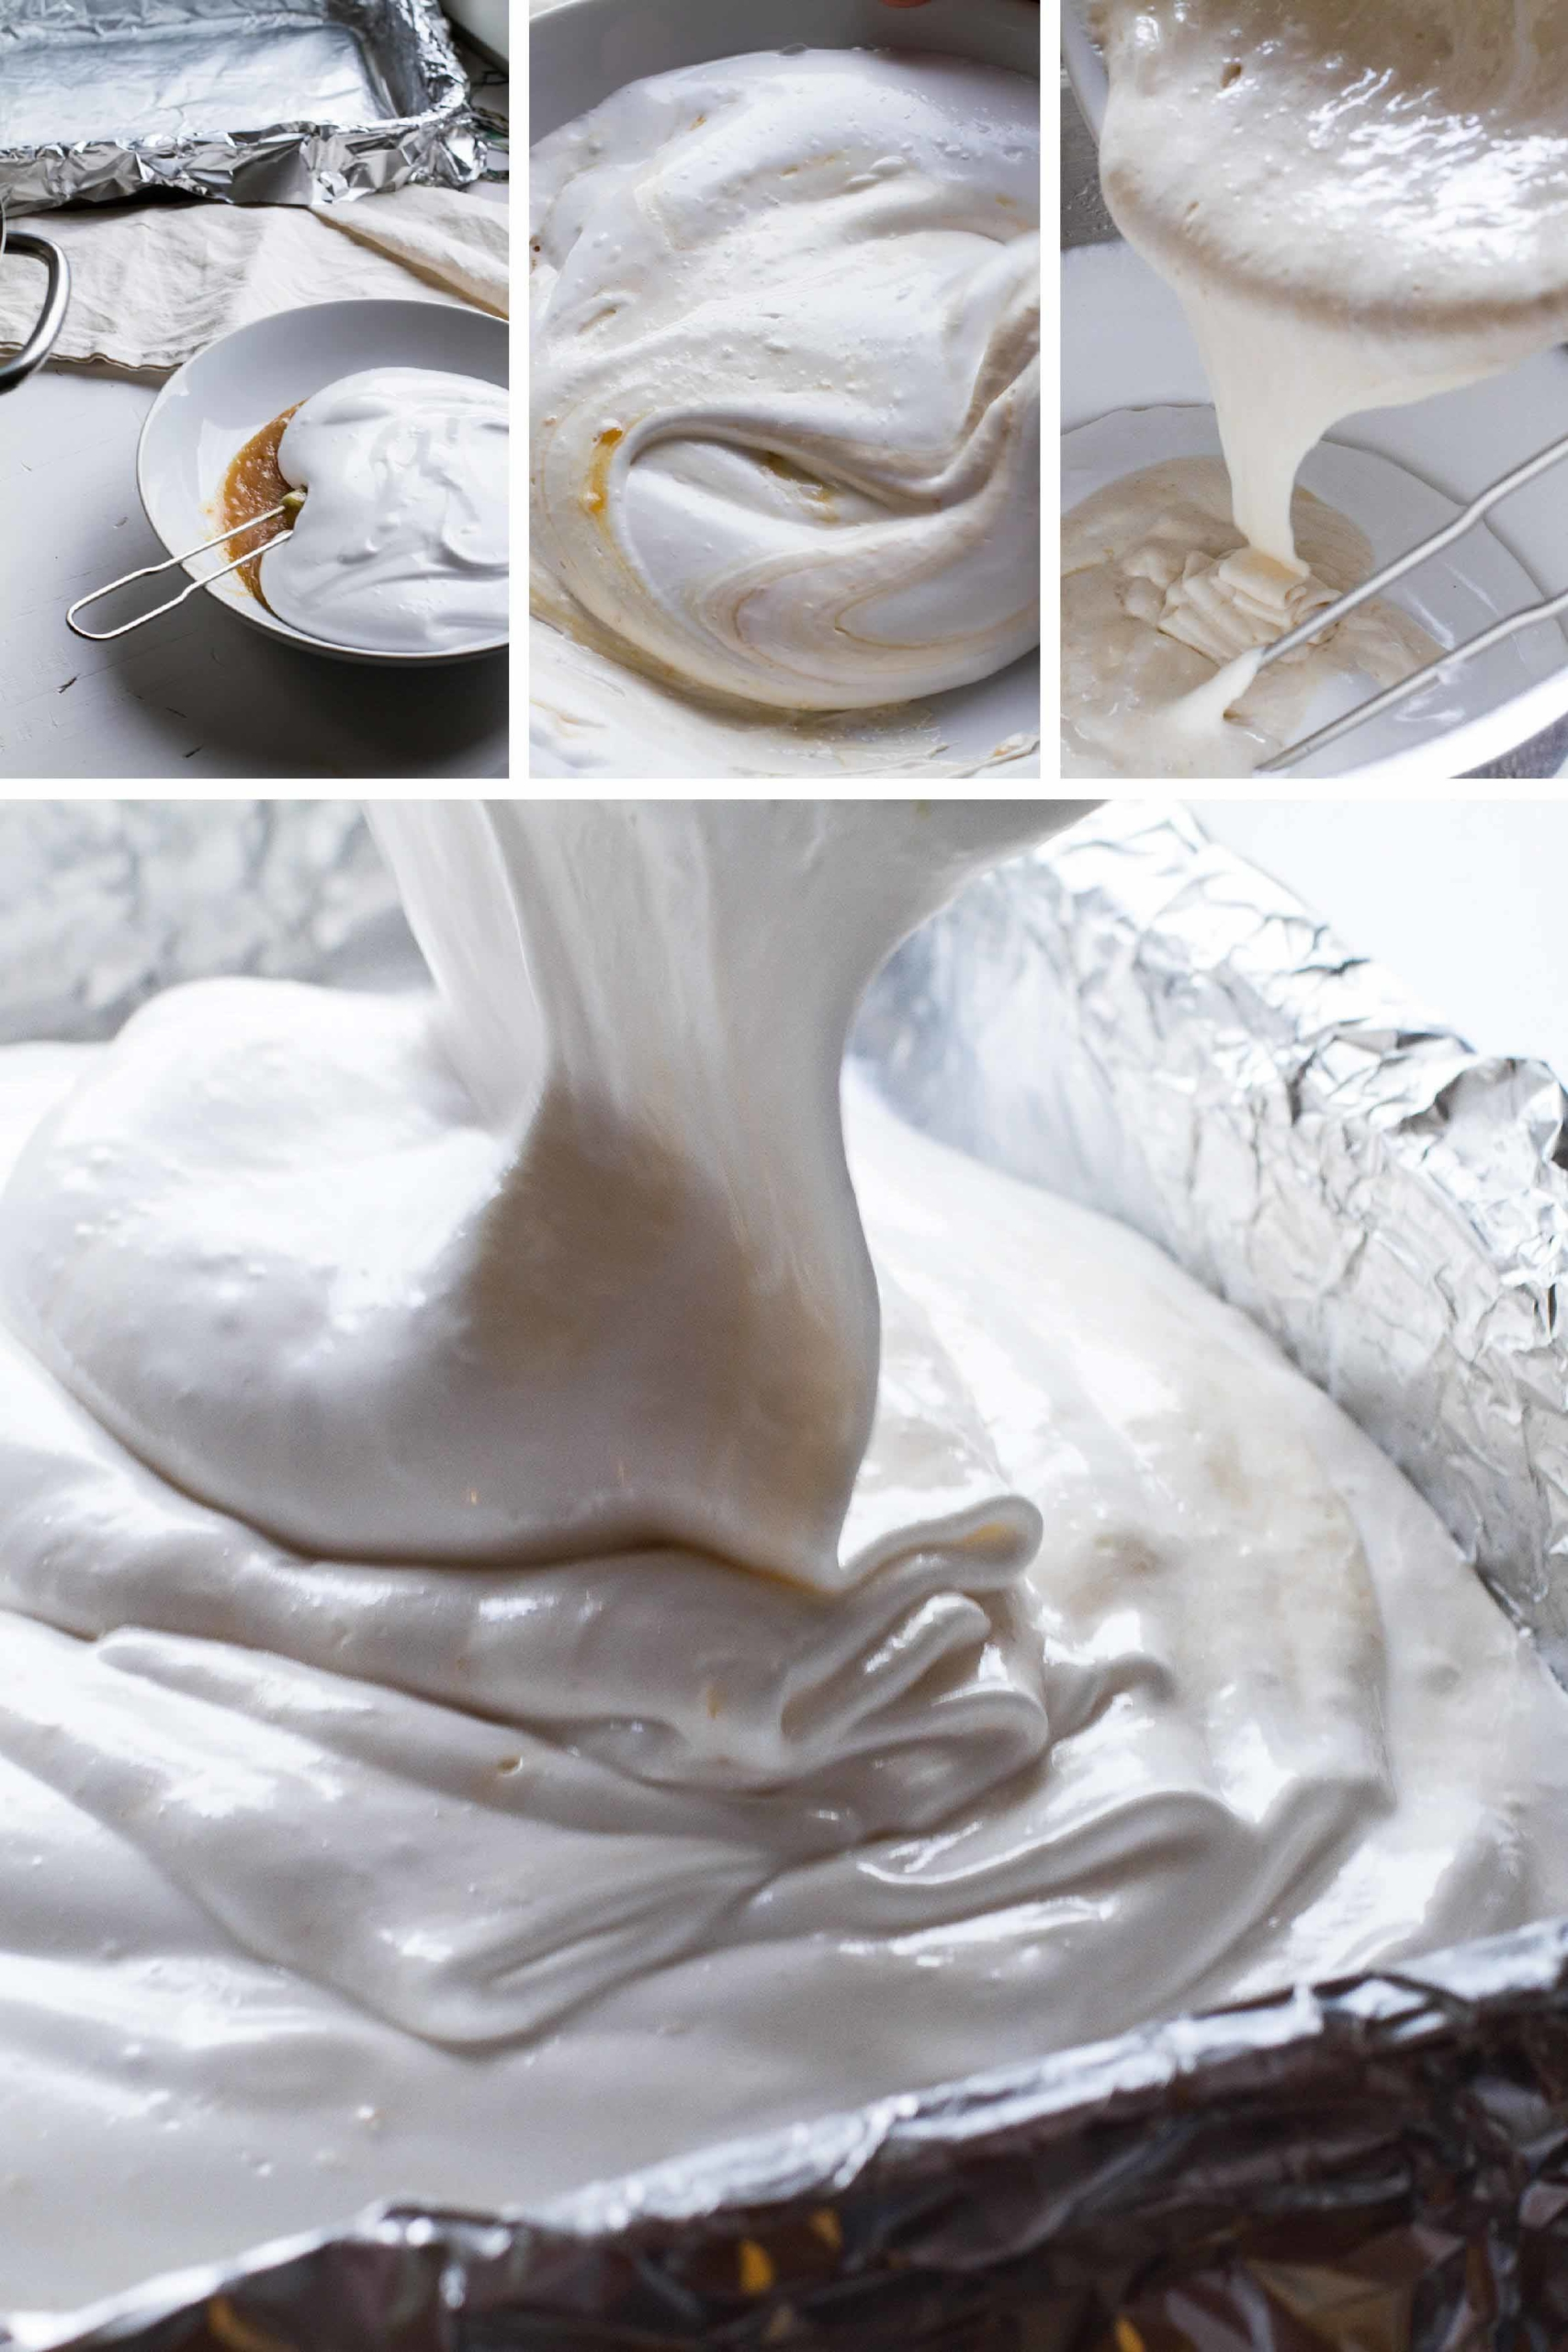 Steps to make it with salted caramel sauce inside the marshmallow.